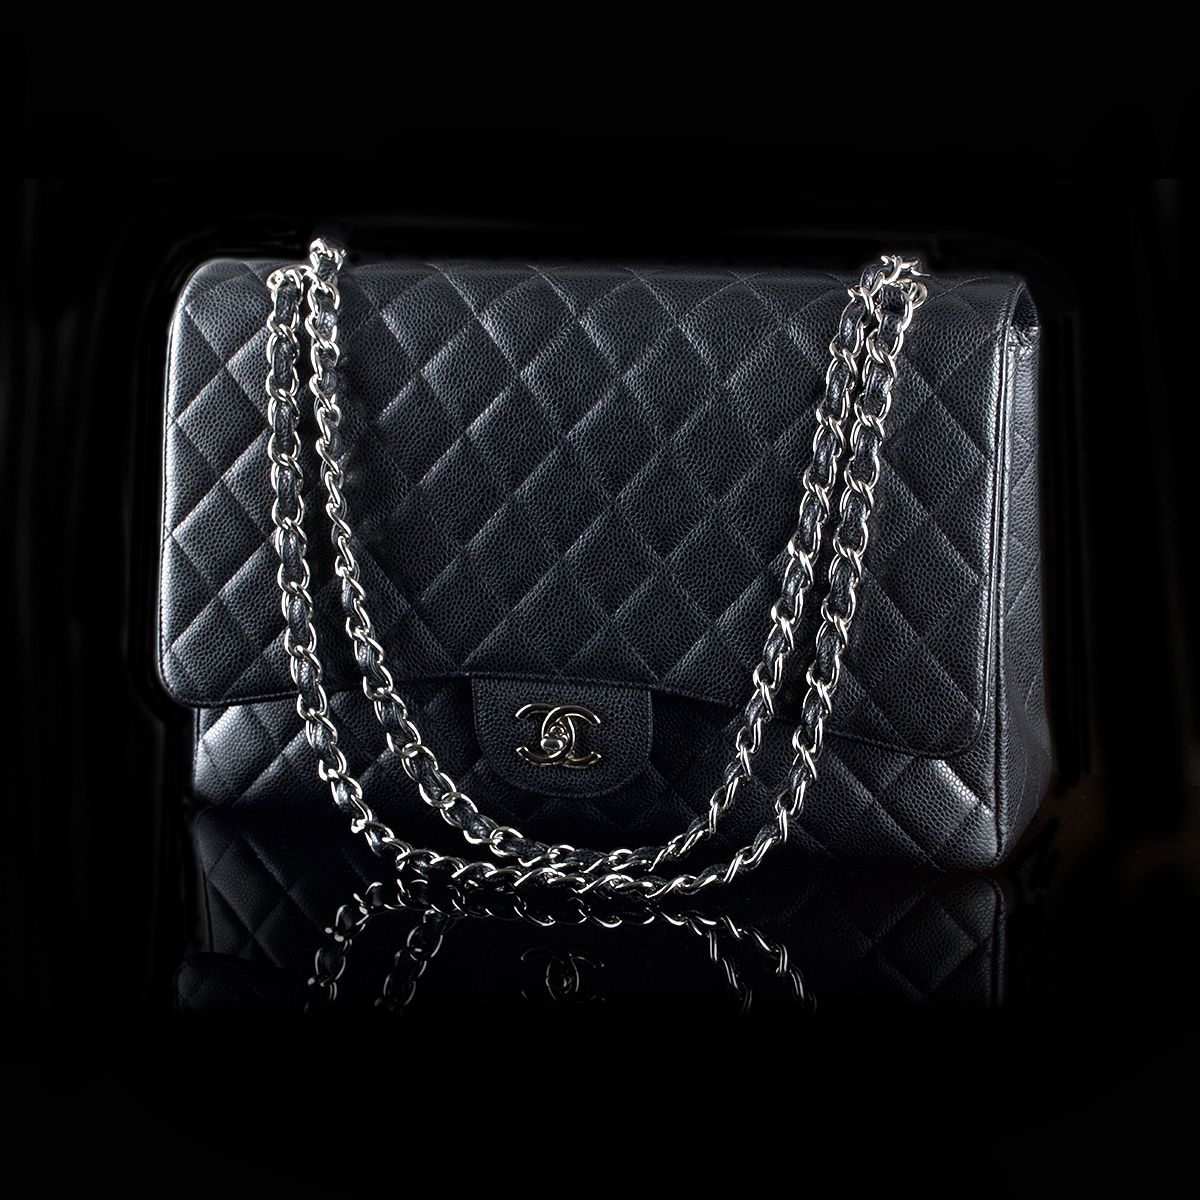 Second Hand Chanel Maxi Black Caviar Skin With Palladium Hardware Sold Bags Luxury Bags Chanel Maxi